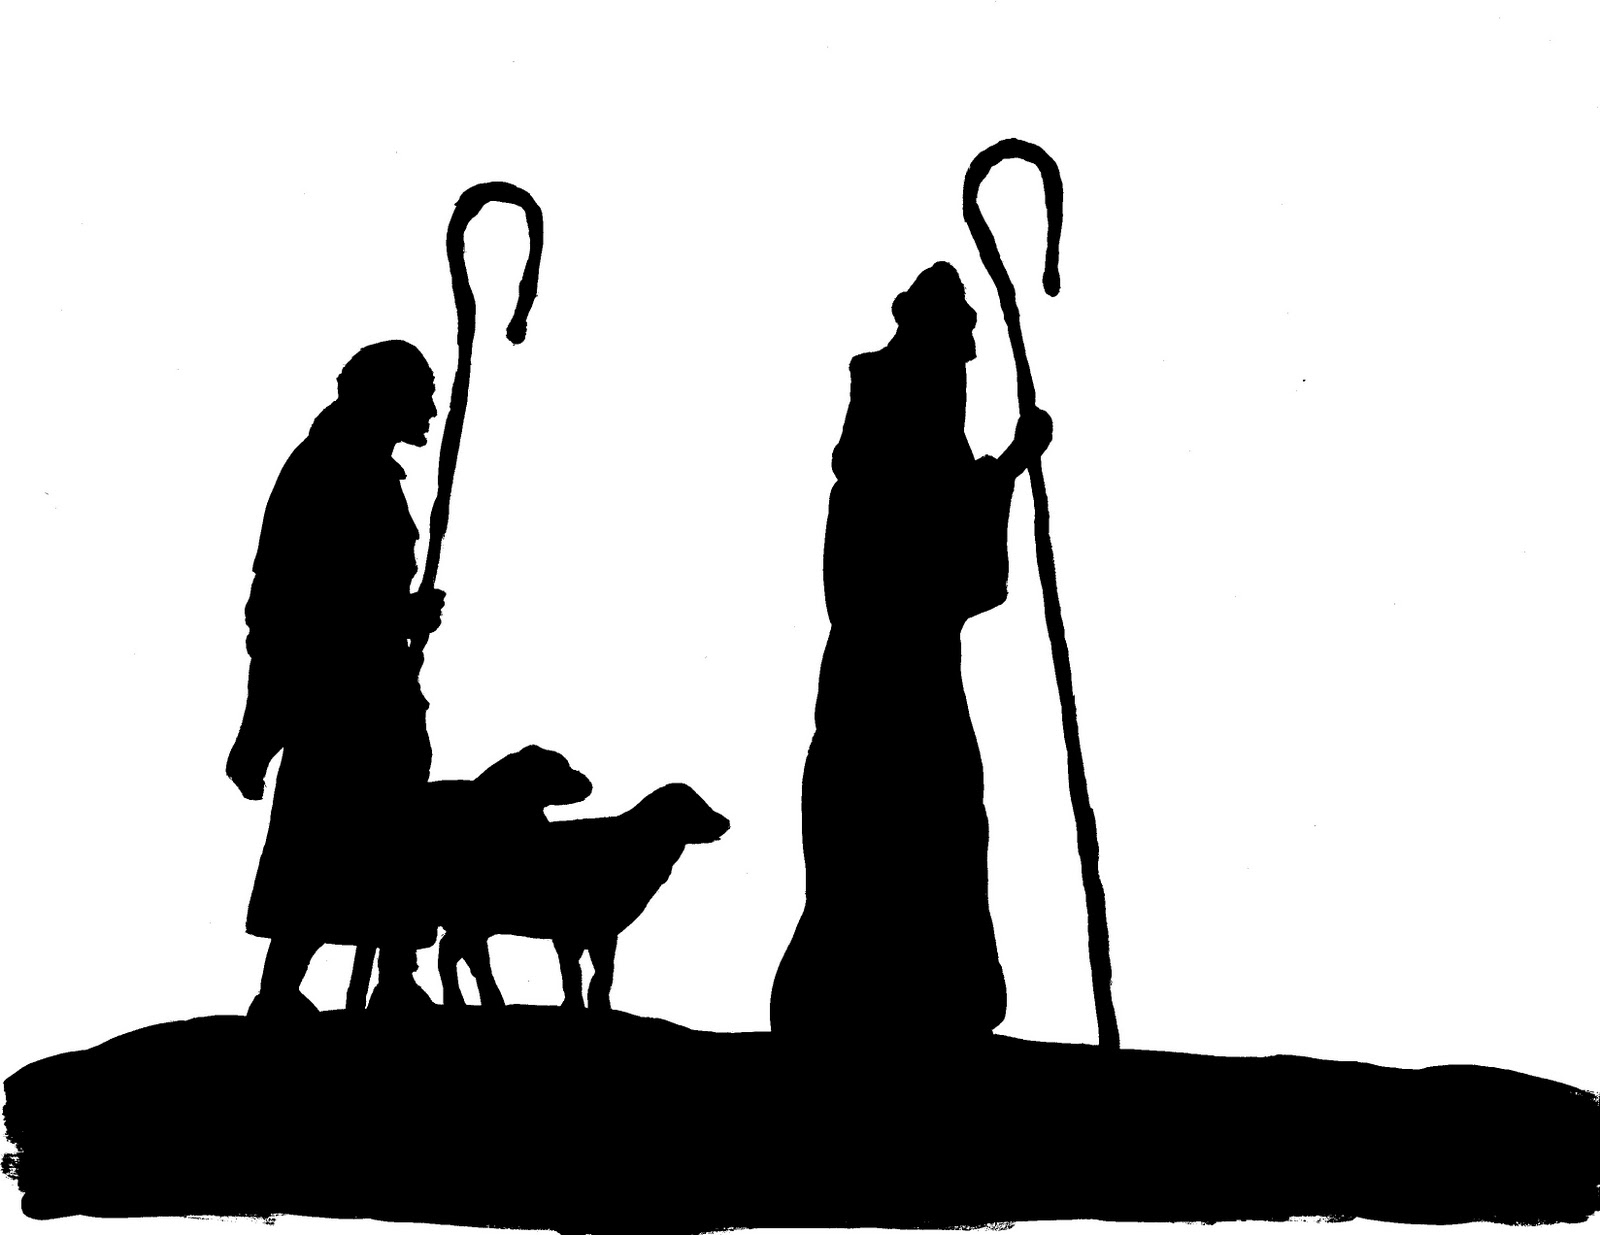 photograph about Nativity Scene Silhouette Printable identified as Printable Nativity Silhouette at  Free of charge for